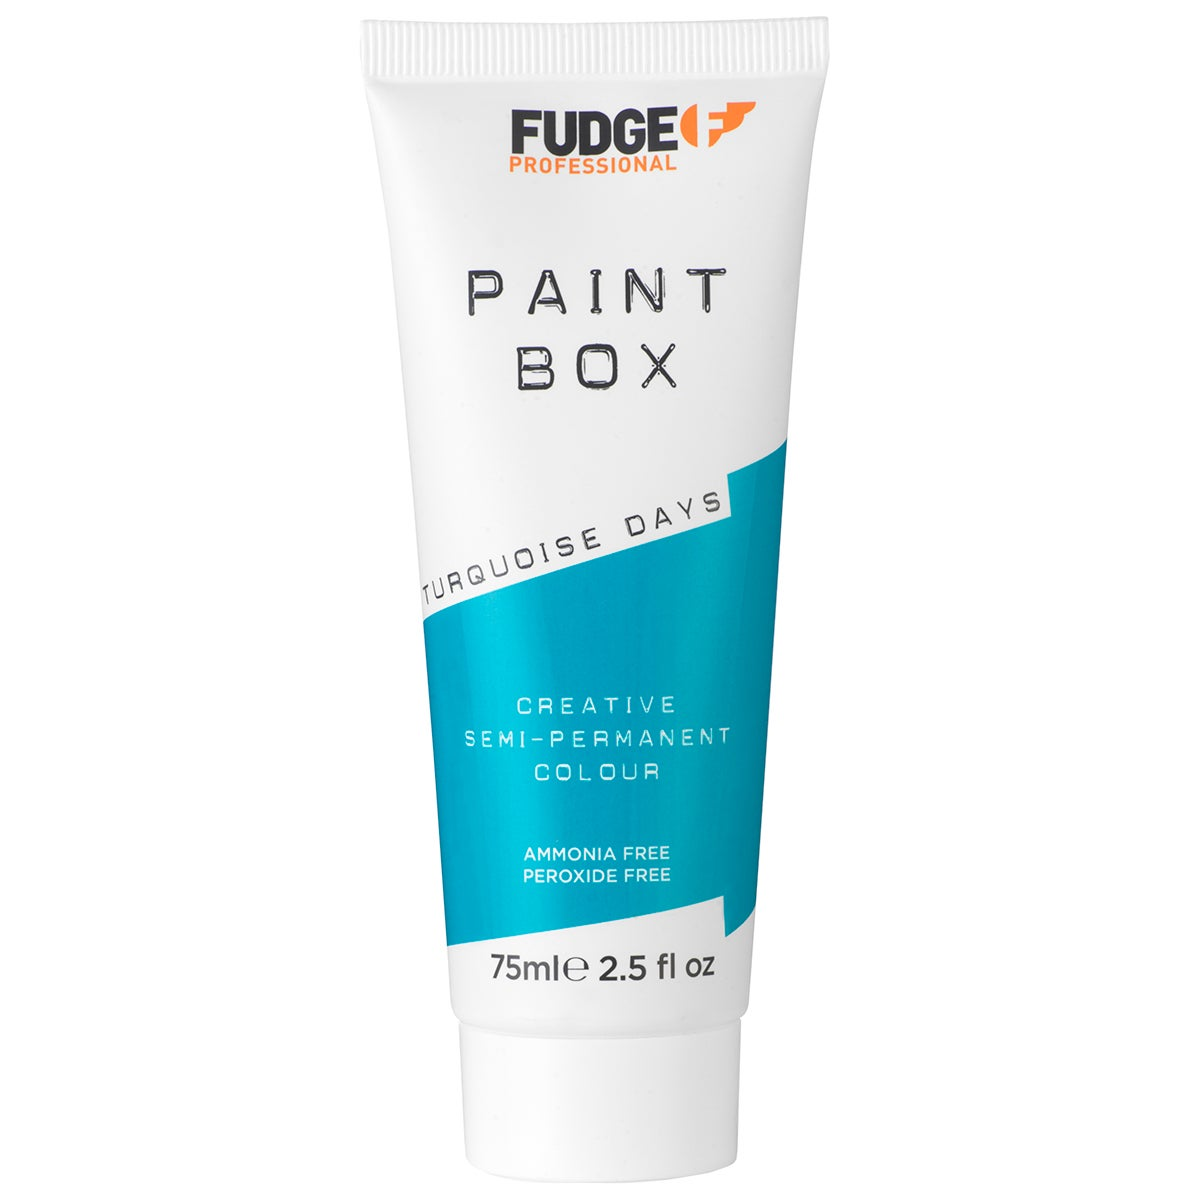 Fudge Paintbox Turqouise Days